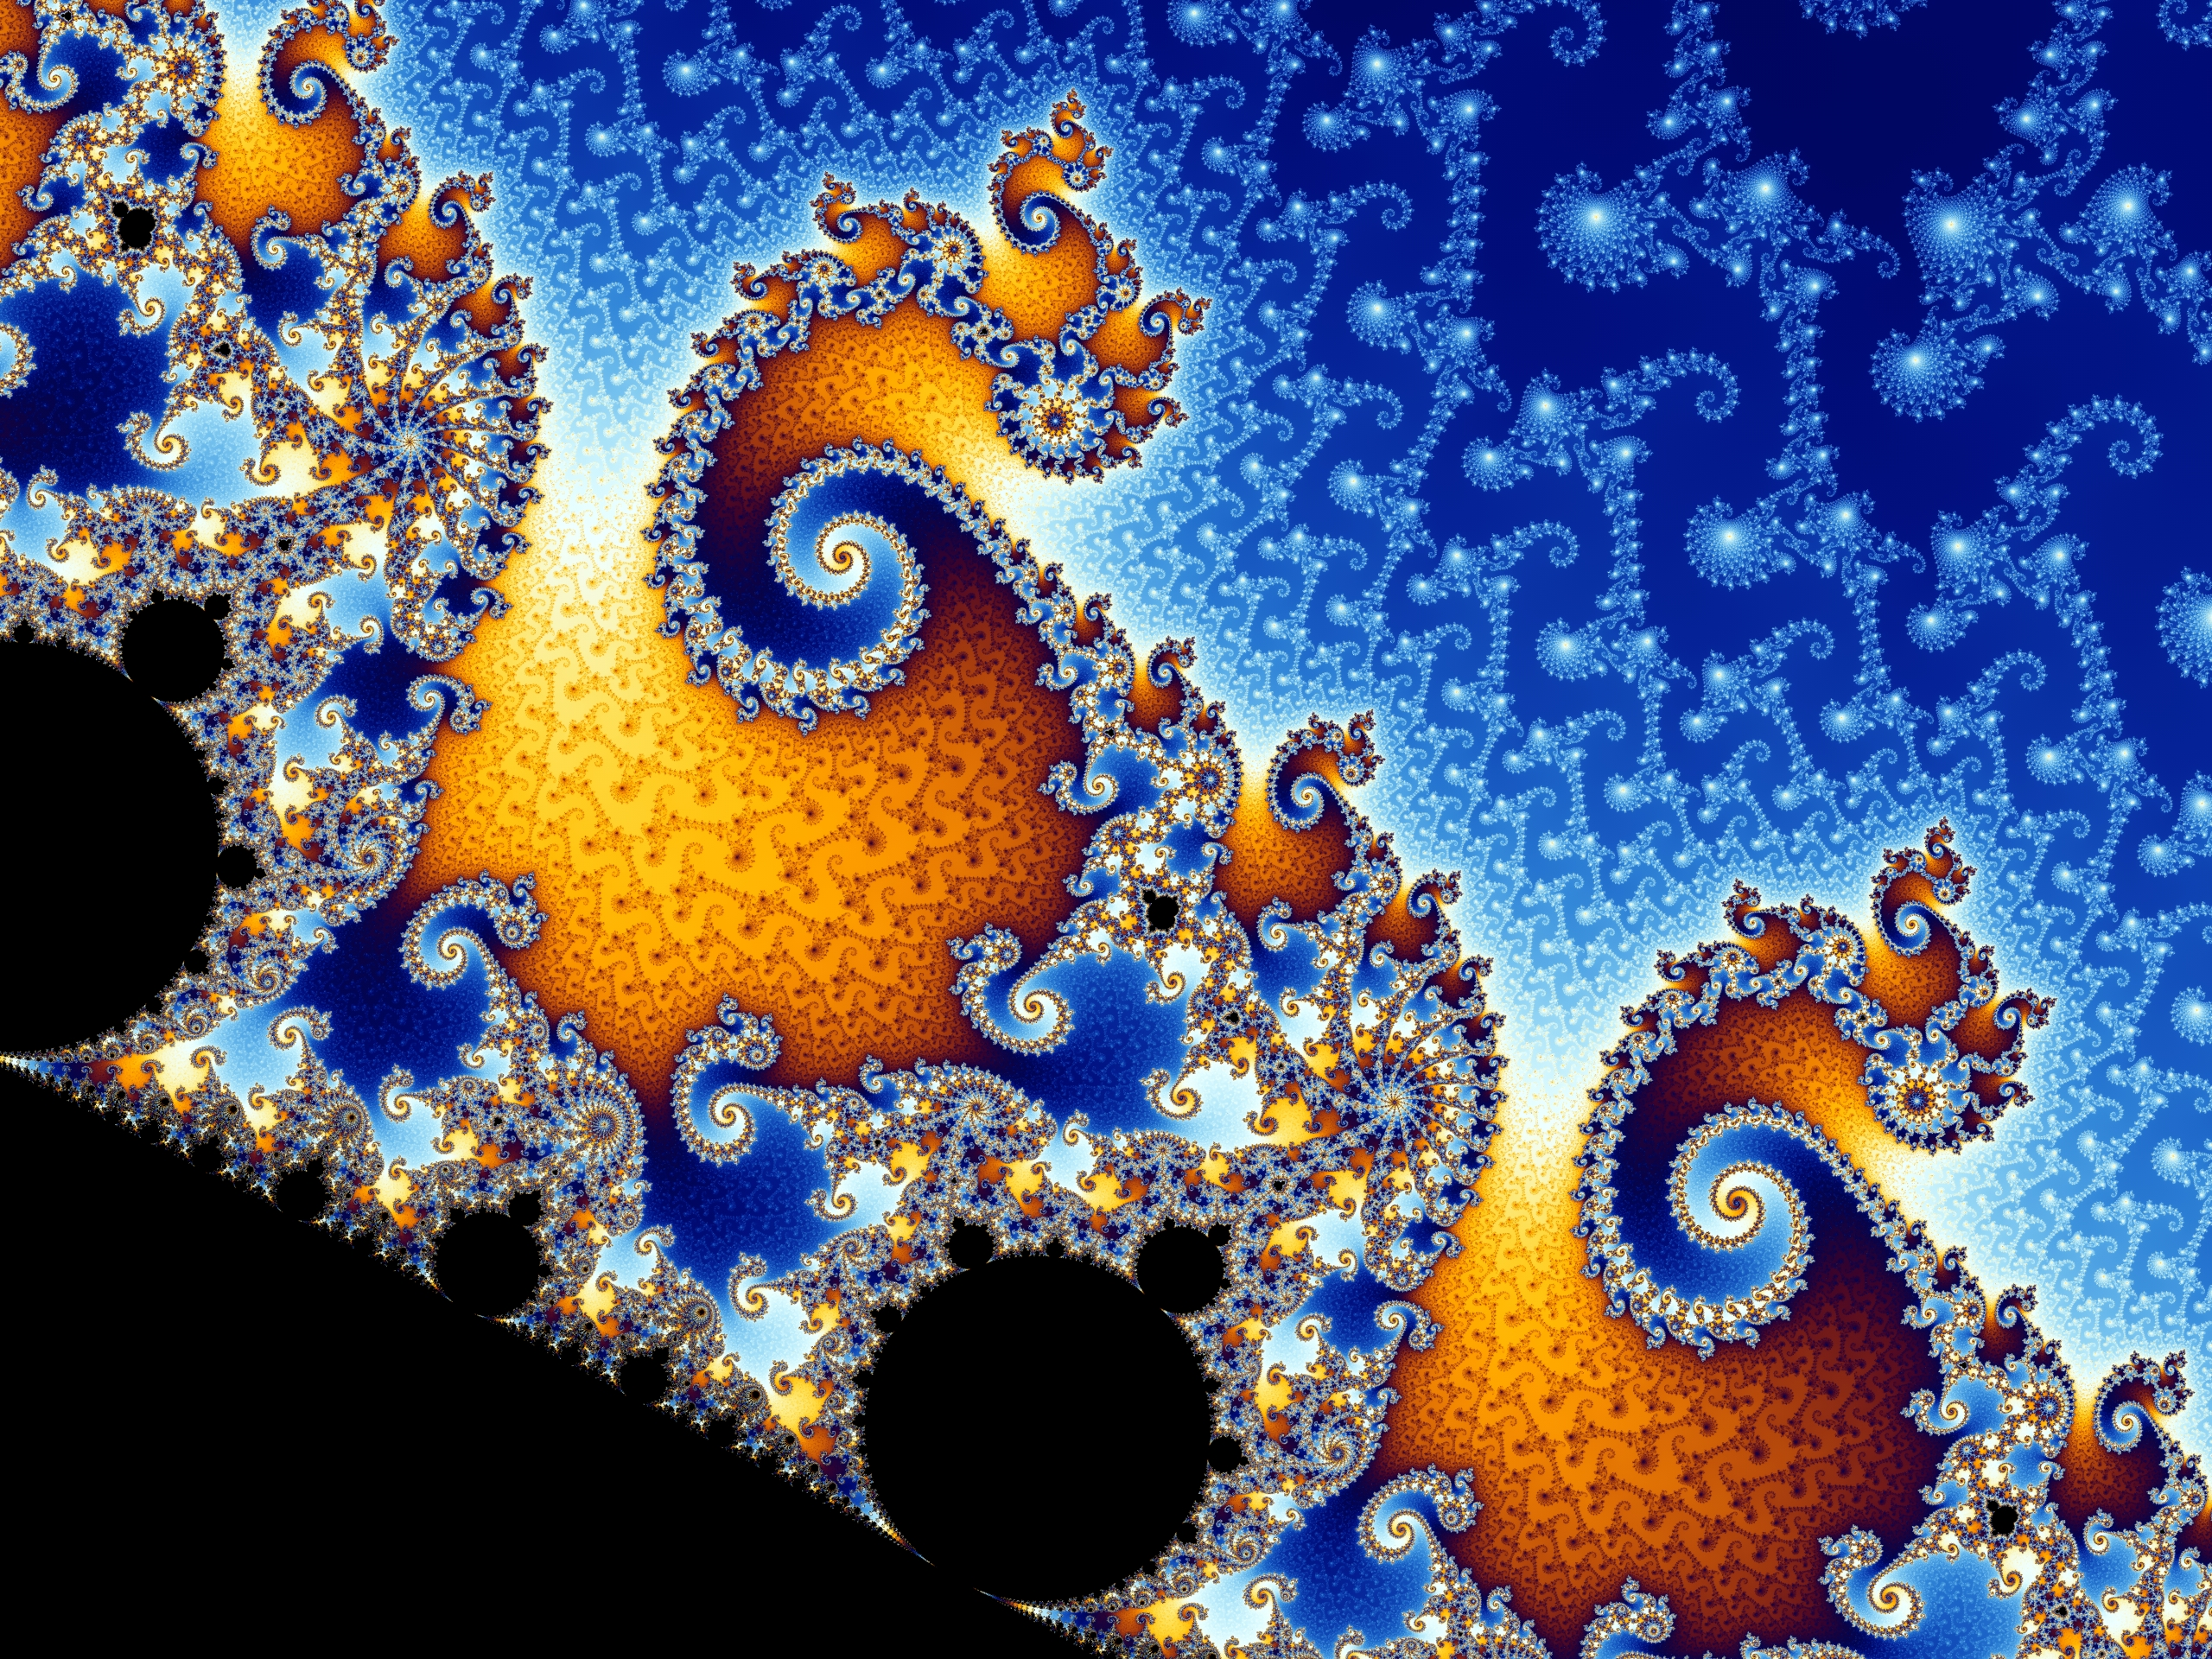 Mandelbrot_Set-12-DOUBLE_SPIRAL-large